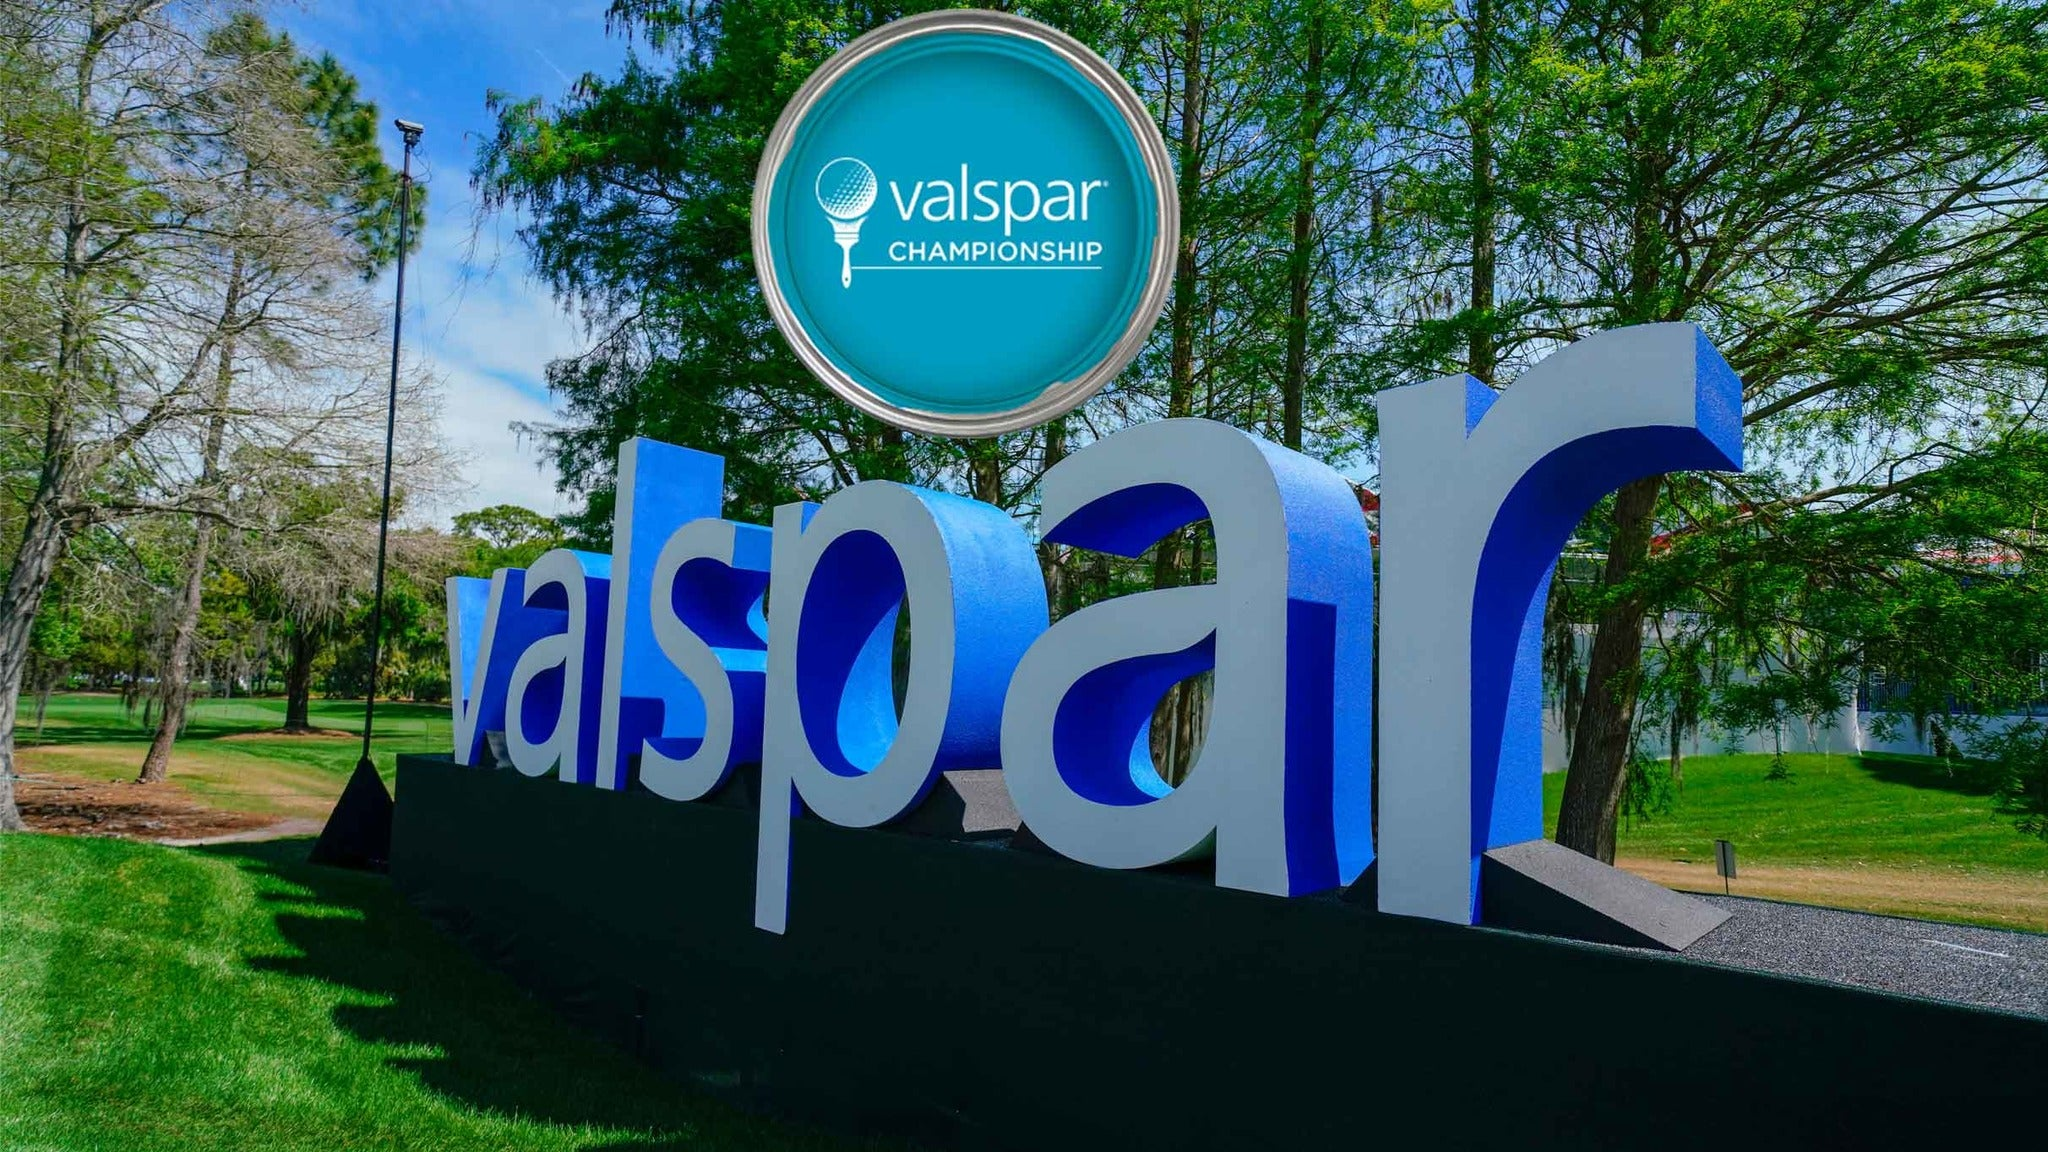 2020 Valspar Championship: Weekly Book of Tickets March 18 - March 22